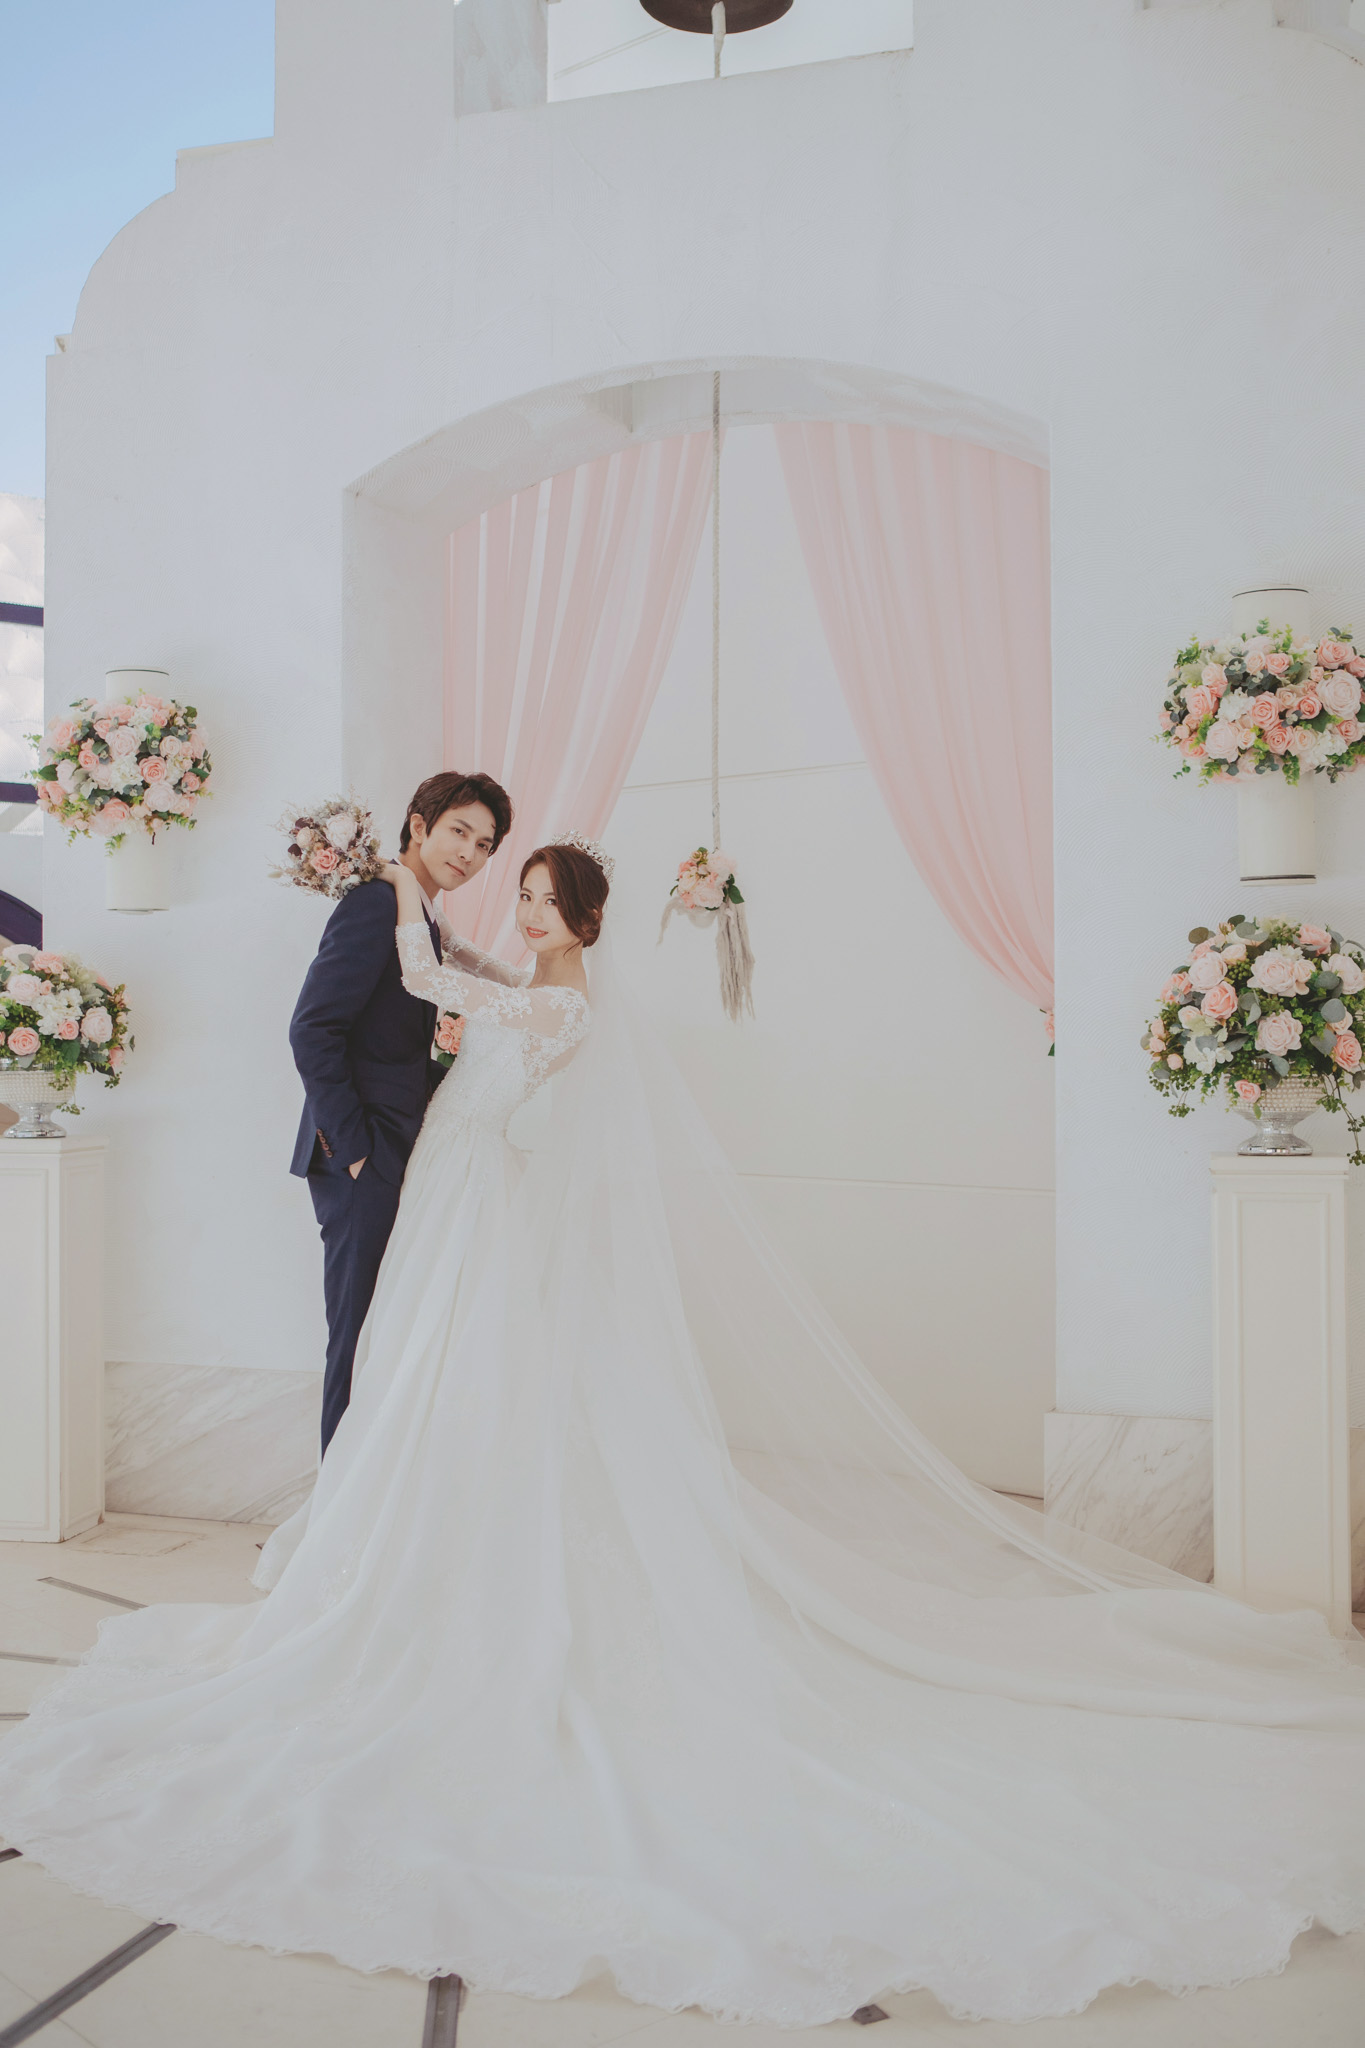 EW Easternwedding 婚攝 居米 婚宴 晶宴